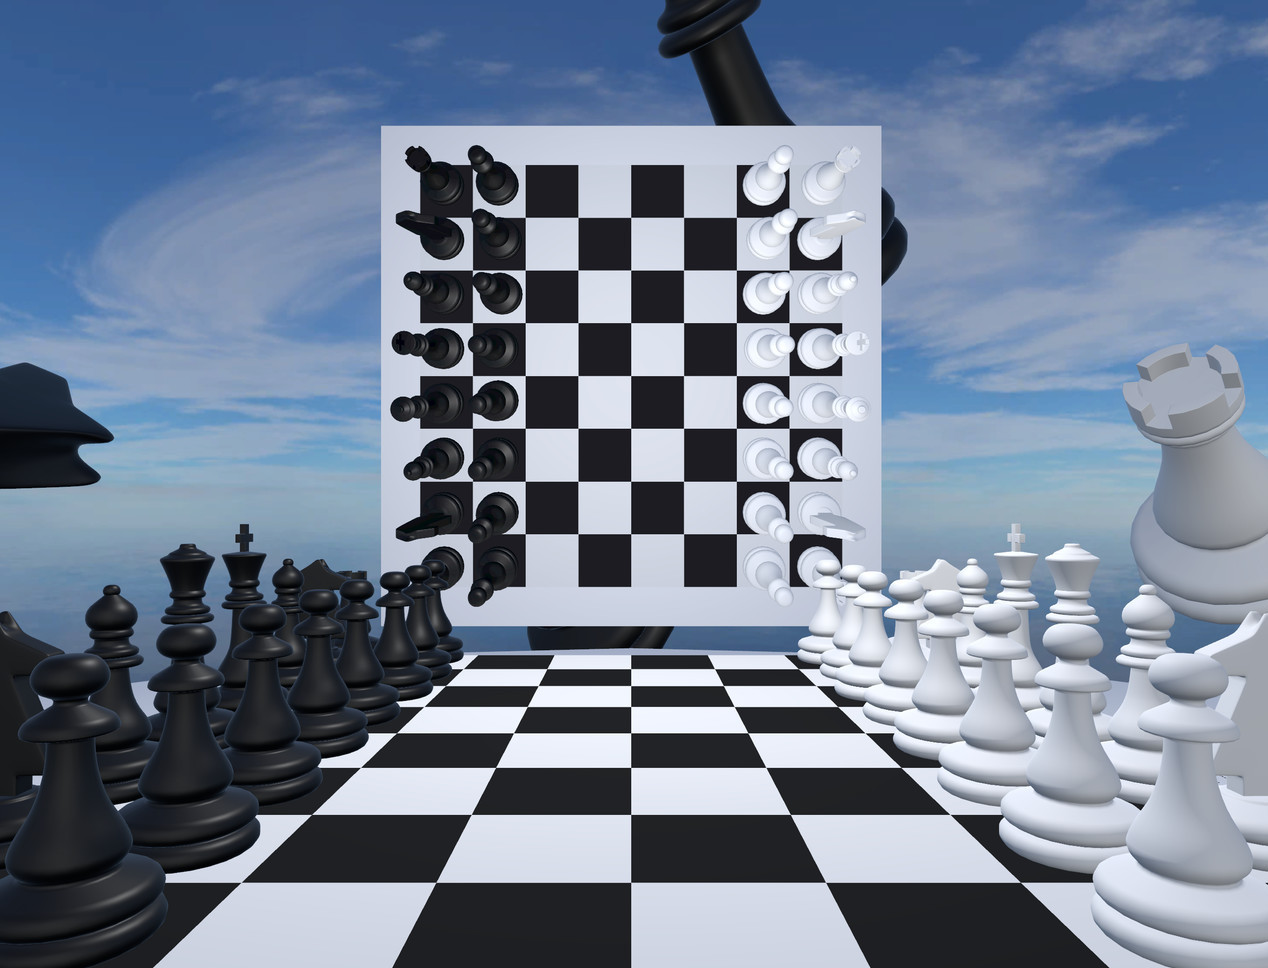 Very Real Chess Windows, VR game